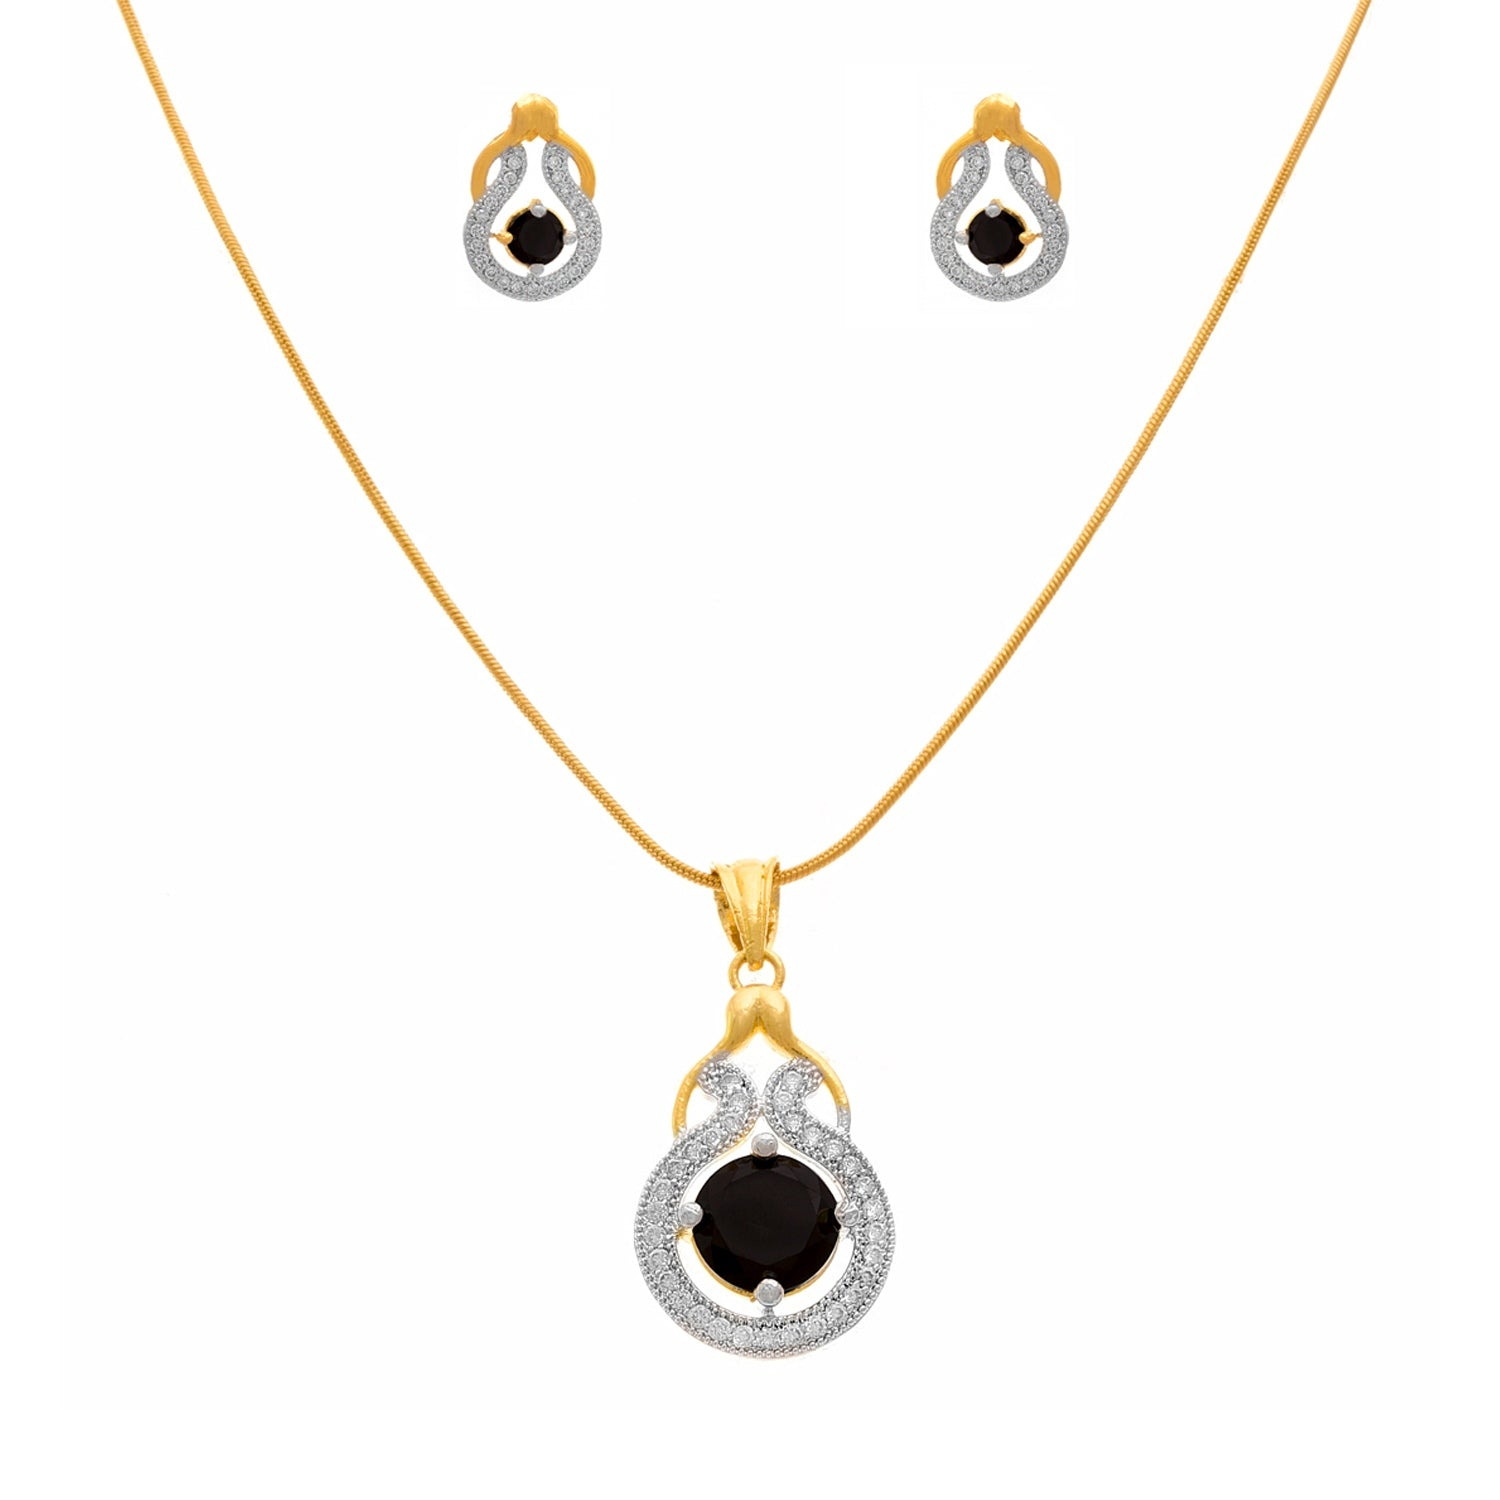 JFL - Stylish Ethnic One Gram Gold Plated Cz American Diamond Stone Designer Pendant Set for Women & Girls.